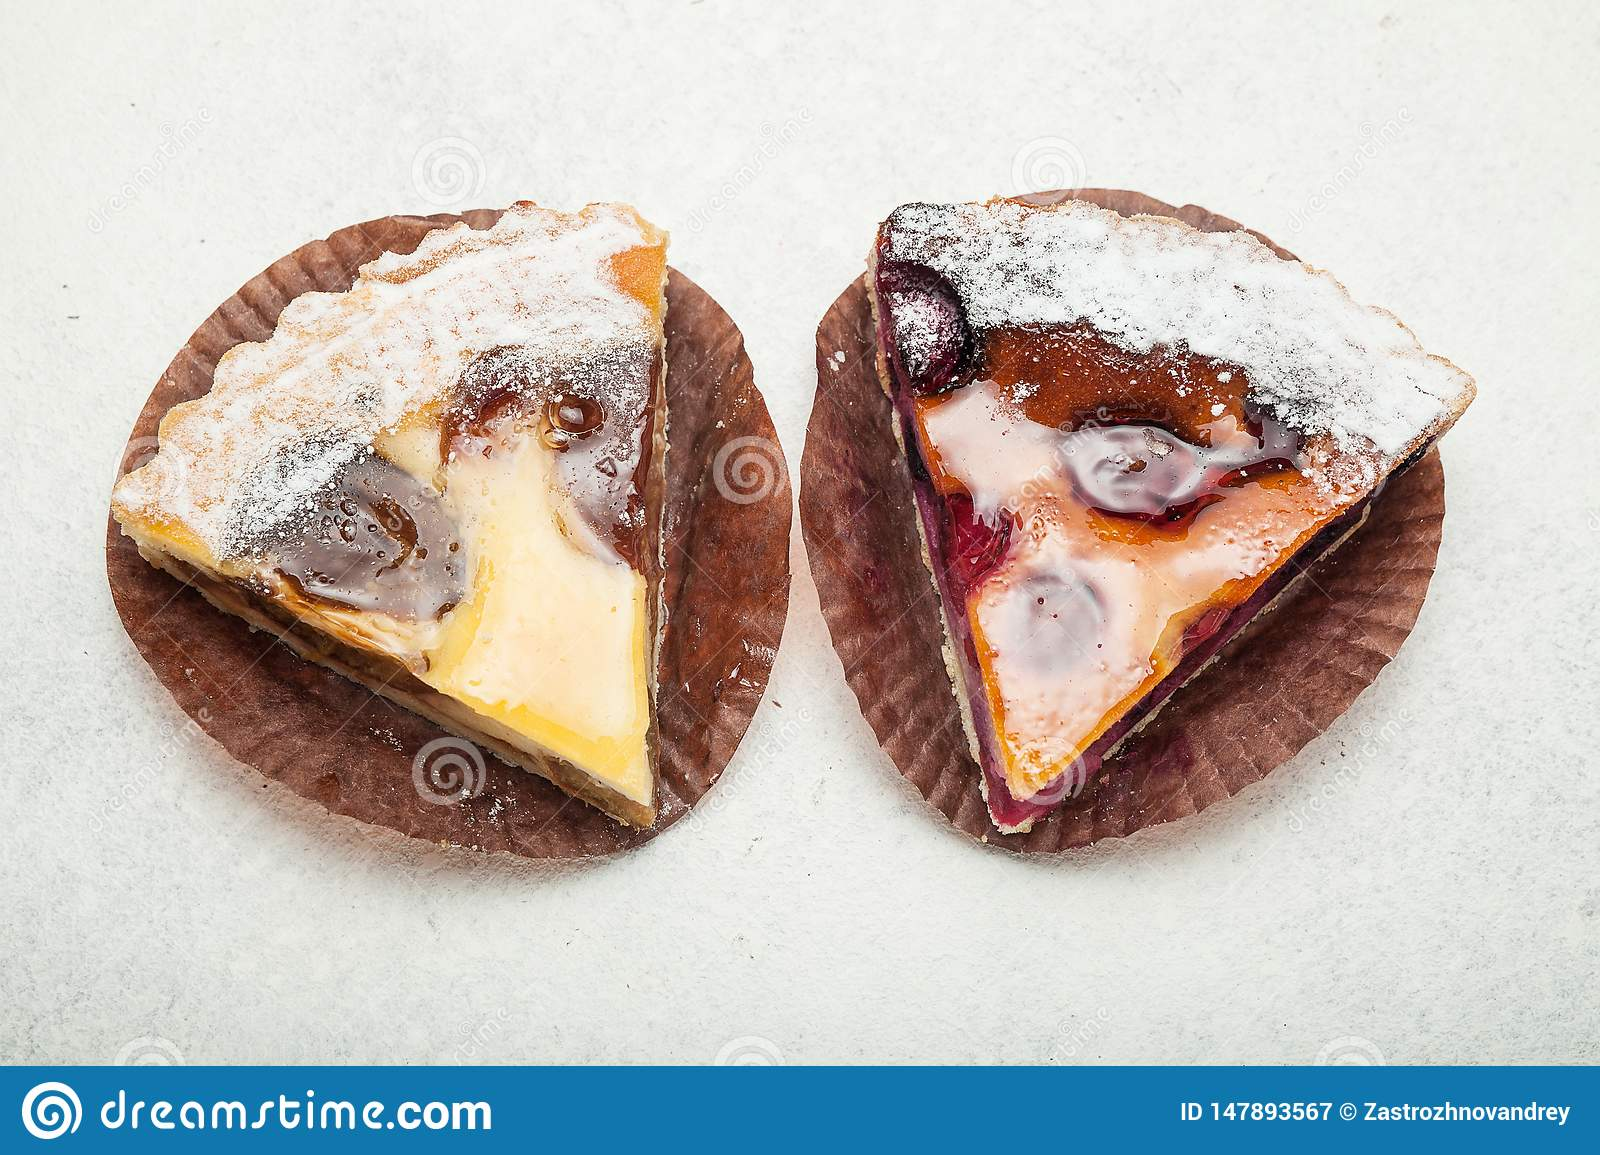 Two slices of fruit pies on a white vintage background